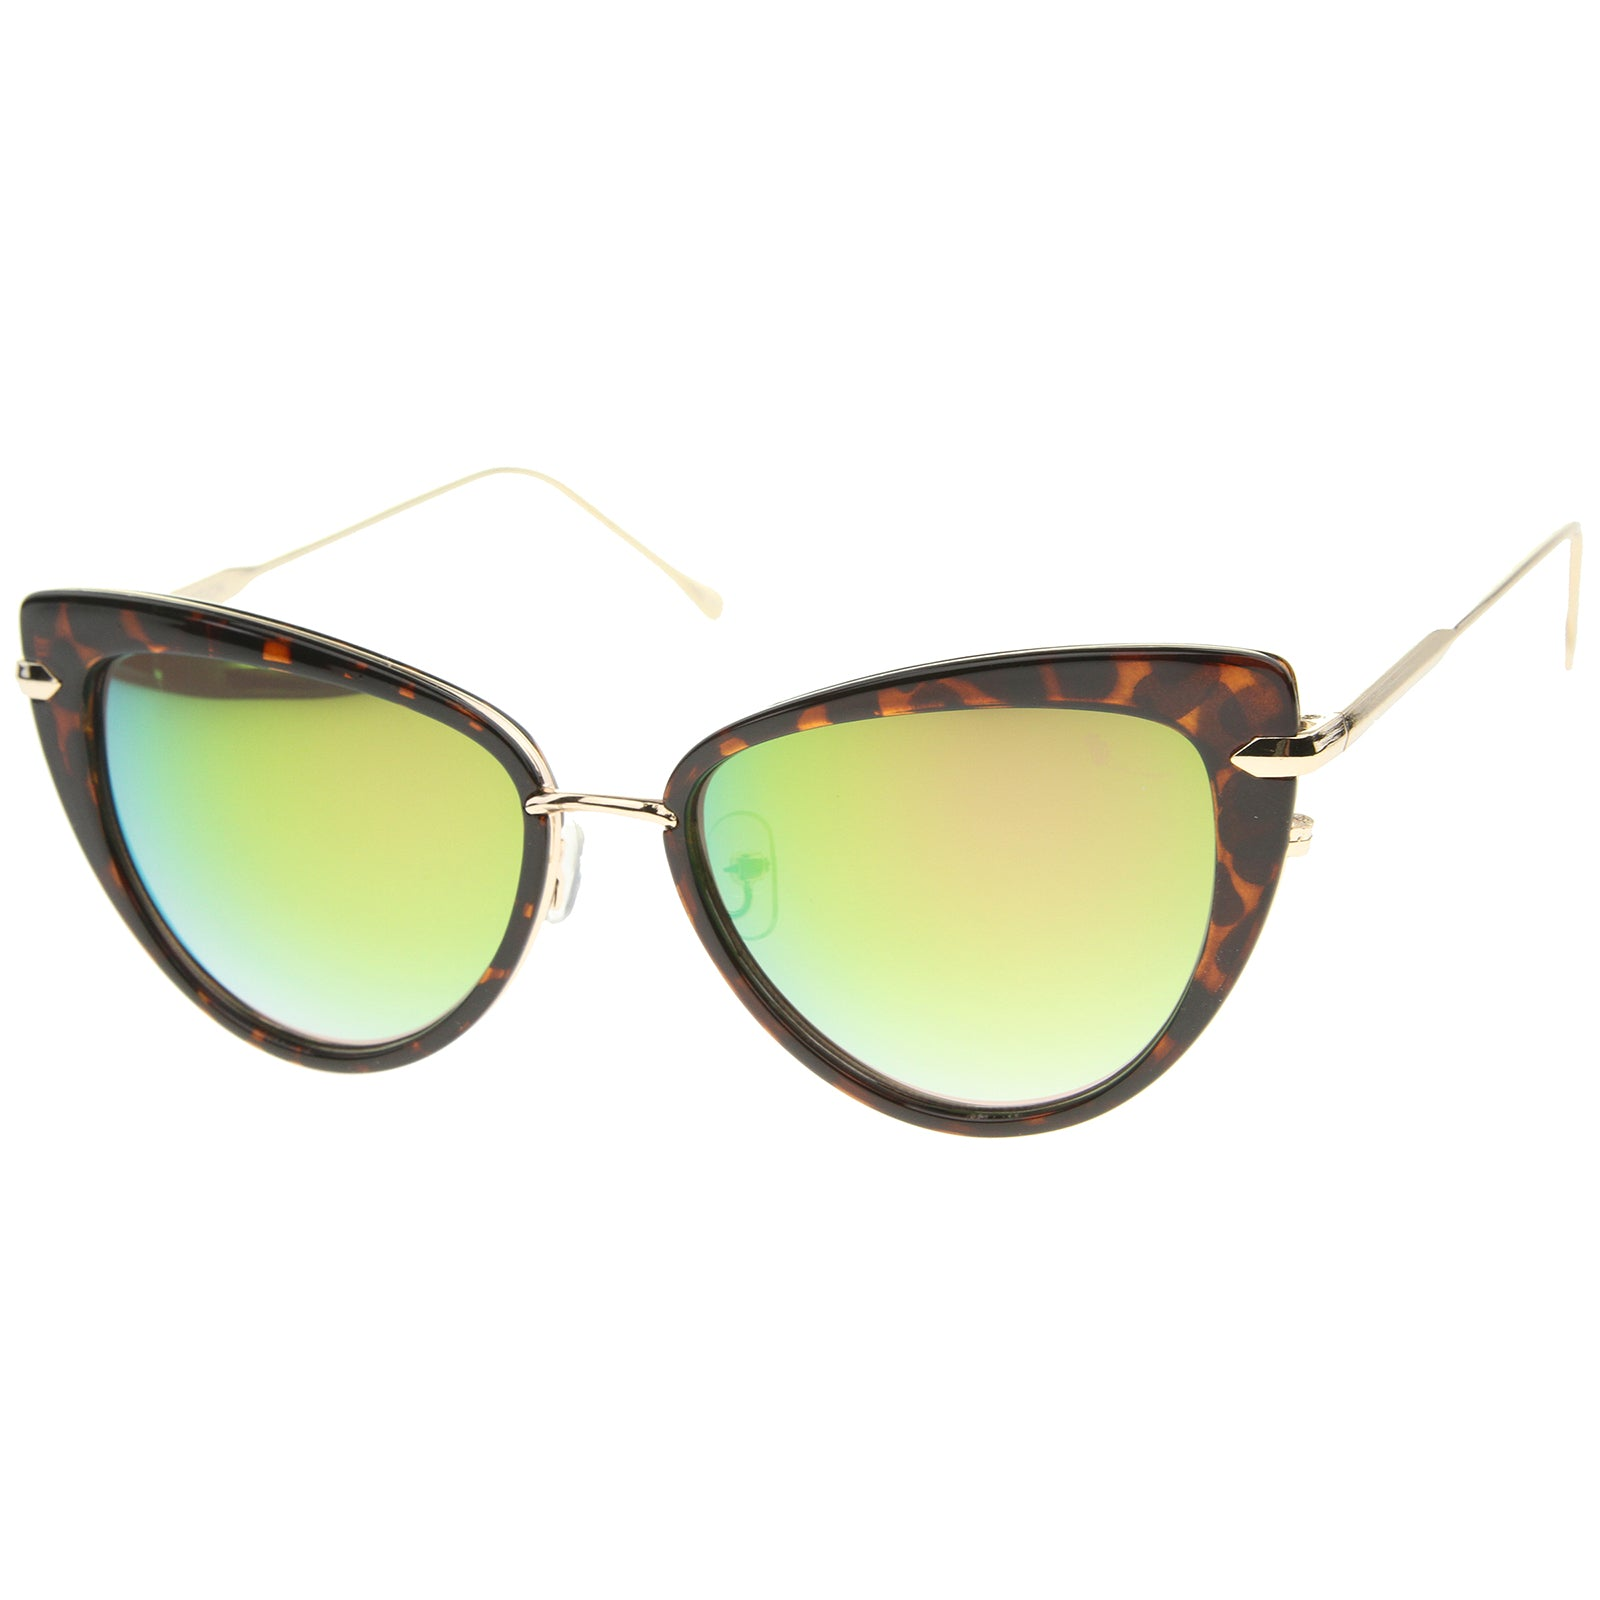 Women's High Fashion Metal Temple Super Cat Eye Sunglasses 55mm - sunglass.la - 6